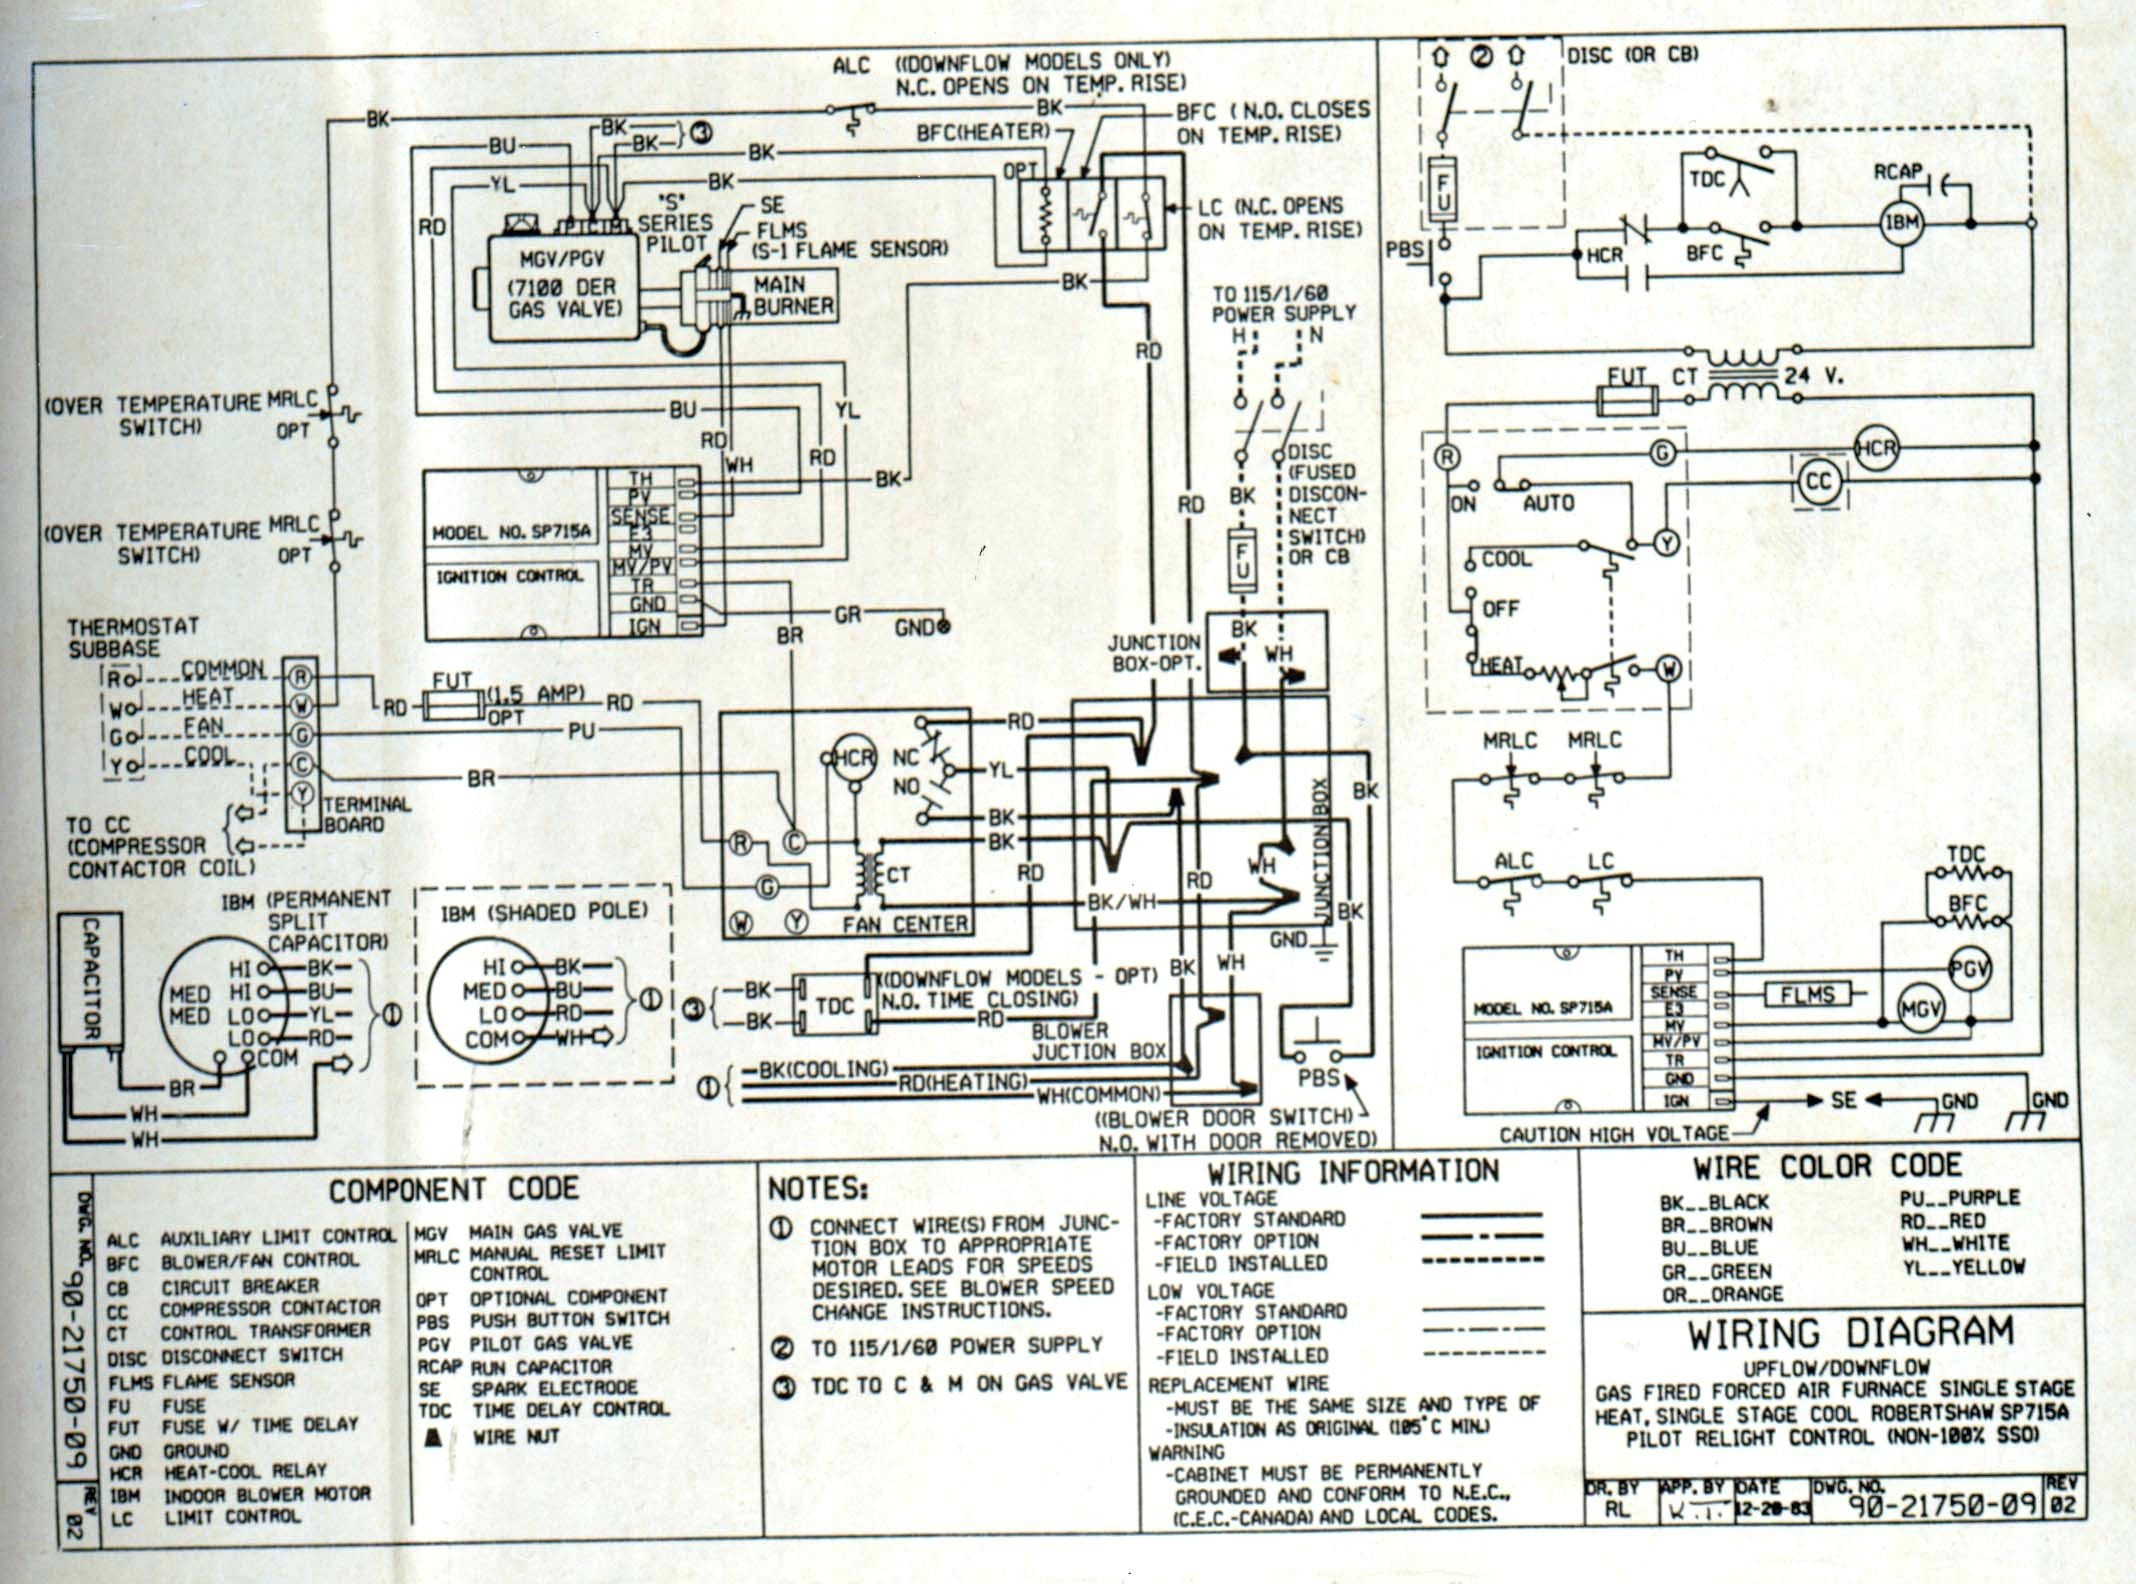 american standard wiring diagram Collection-Wiring Diagram for American Standard Gas Furnace Refrence Wiring Diagrams for Gas Furnace Valid Refrence Wiring 6-q